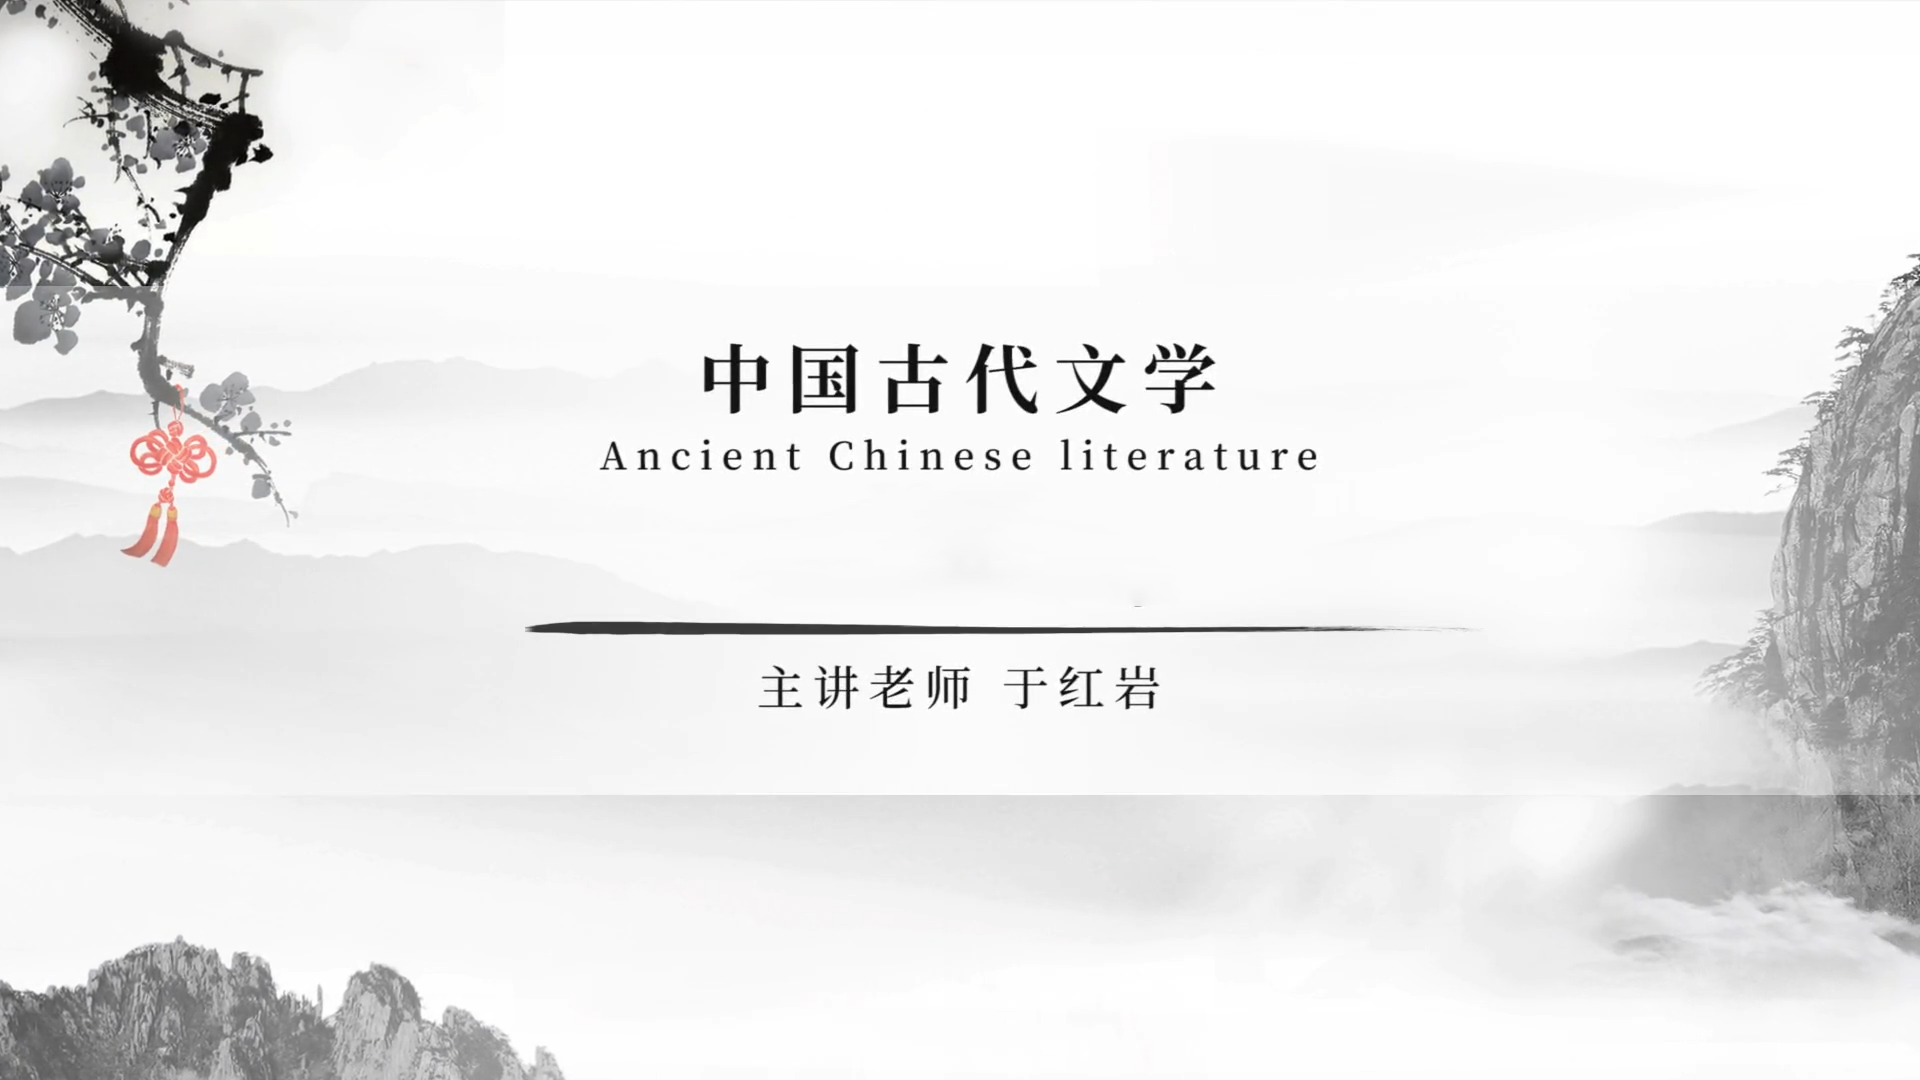 Chinese Culture Course 2: Chinese Ancient Literature